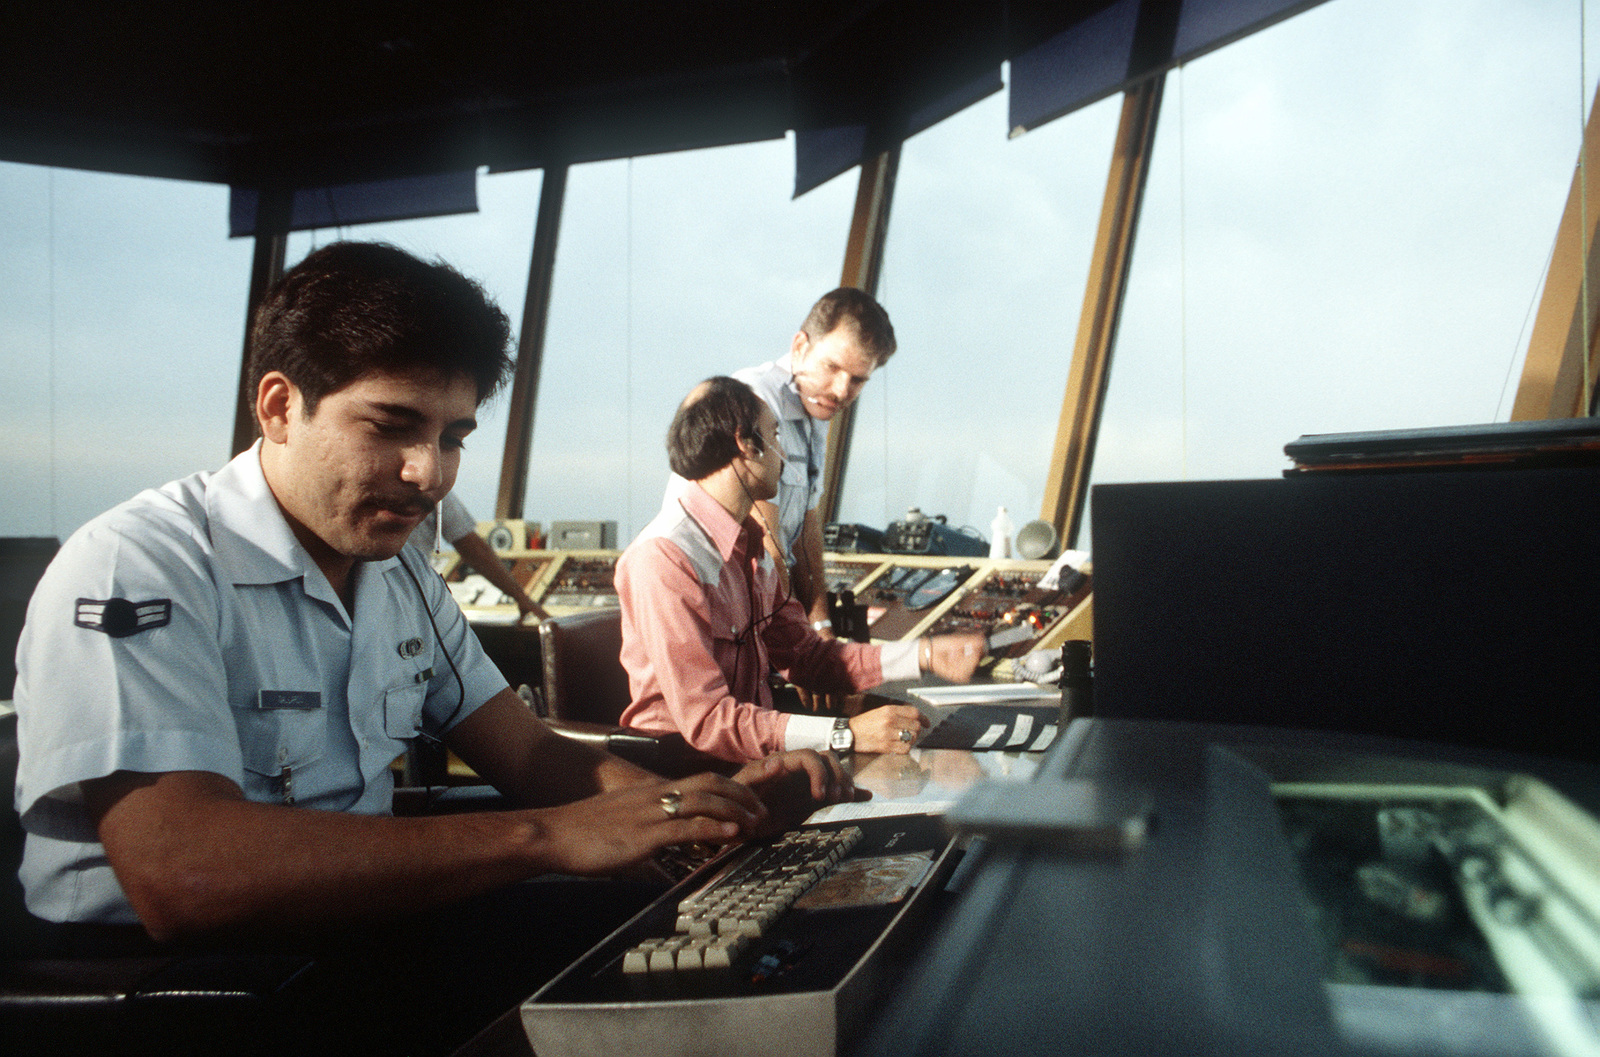 TSGT Fred Crum discusses air traffic control operations with a civilian counterpart, at the Oakland Airport Control Tower